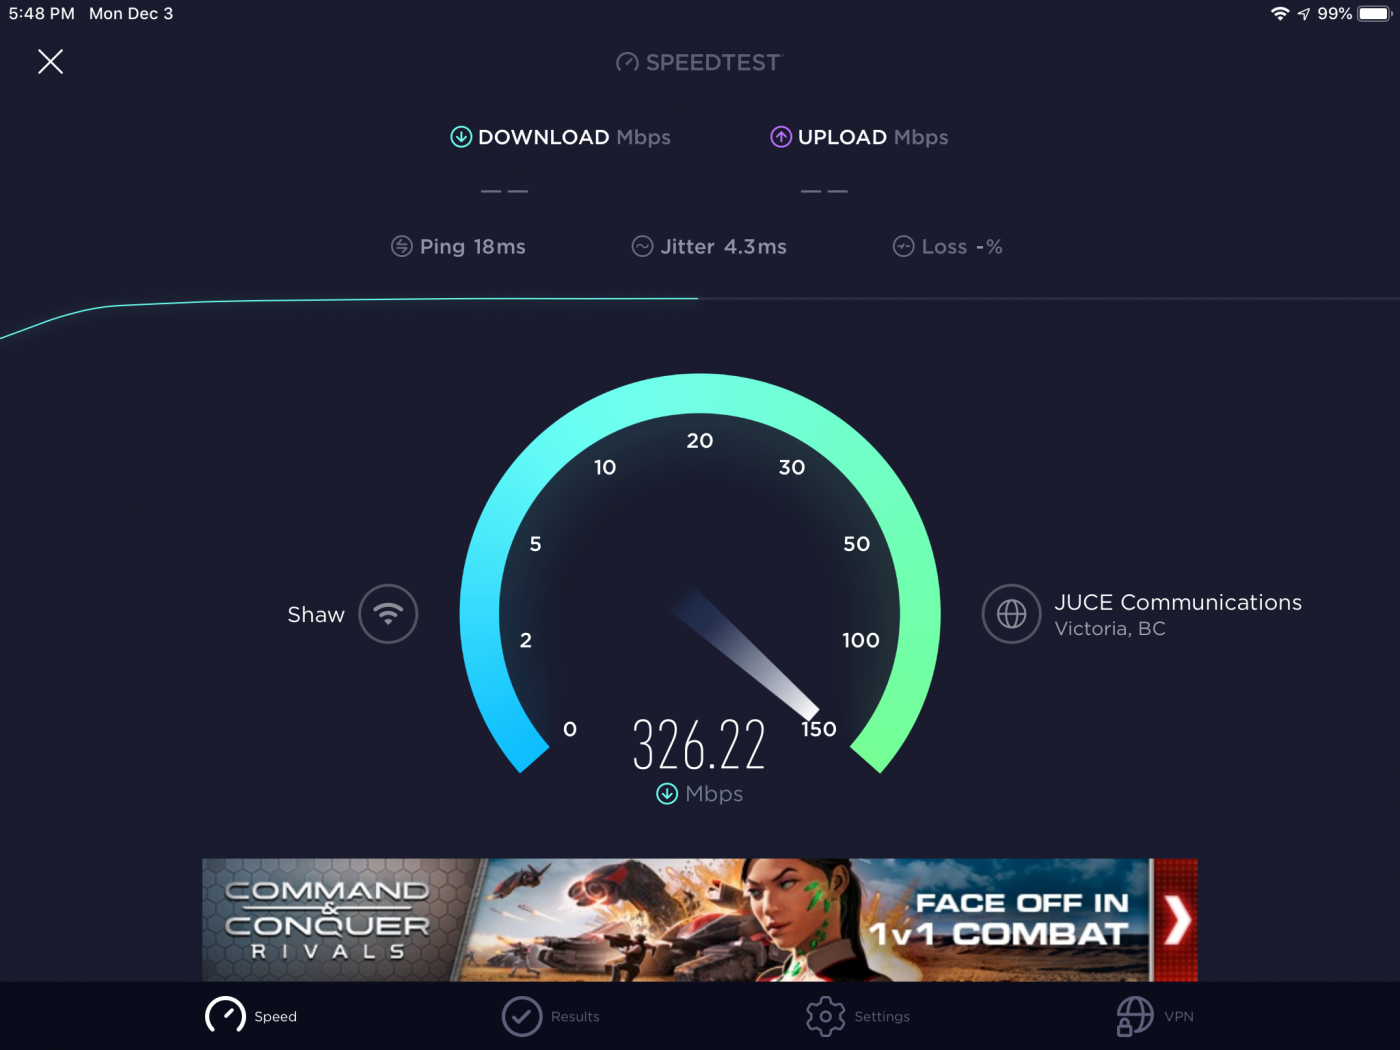 Cable/internet/satellite rates: how much are you paying